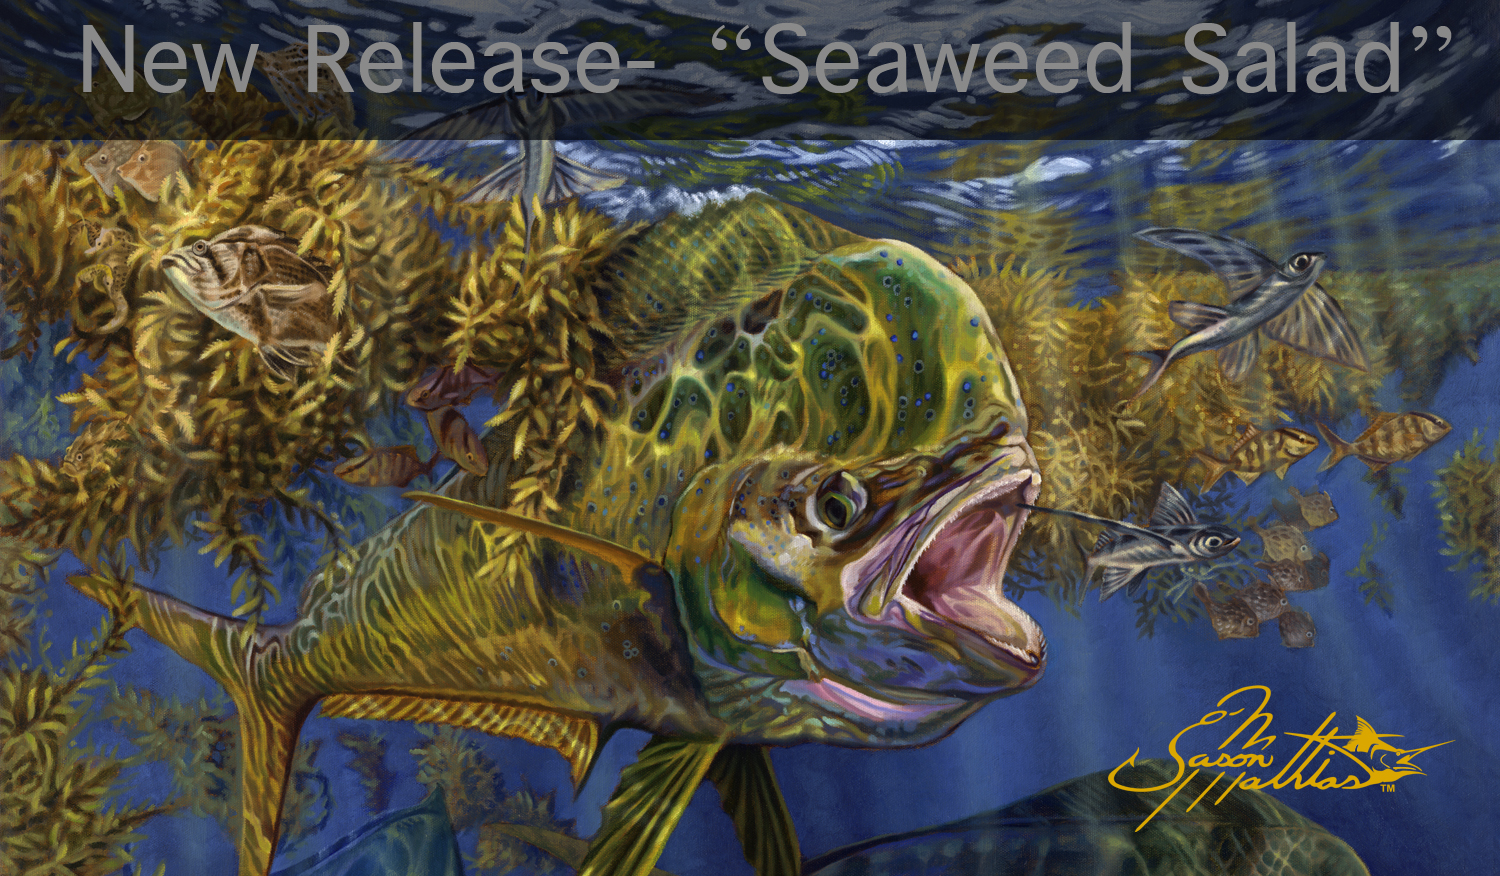 mahi, dorado, dolphin fish, gamefish art, sportfish art, weedline, underwater, prints, painting, art, jason mathias